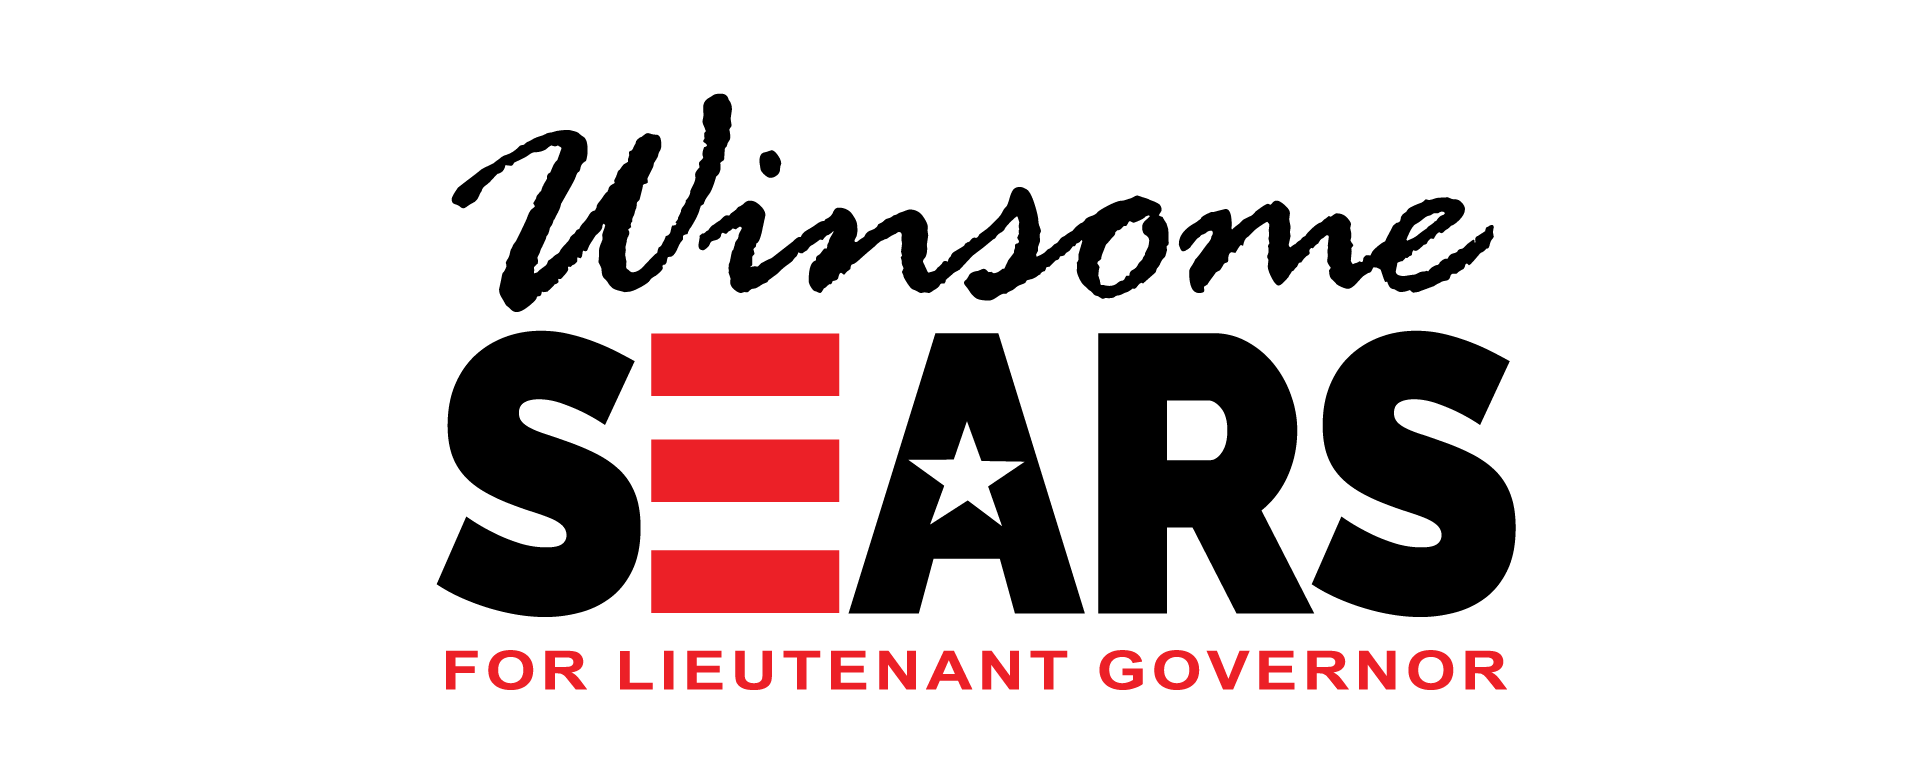 Winsome Sears for Lieutenant Governor